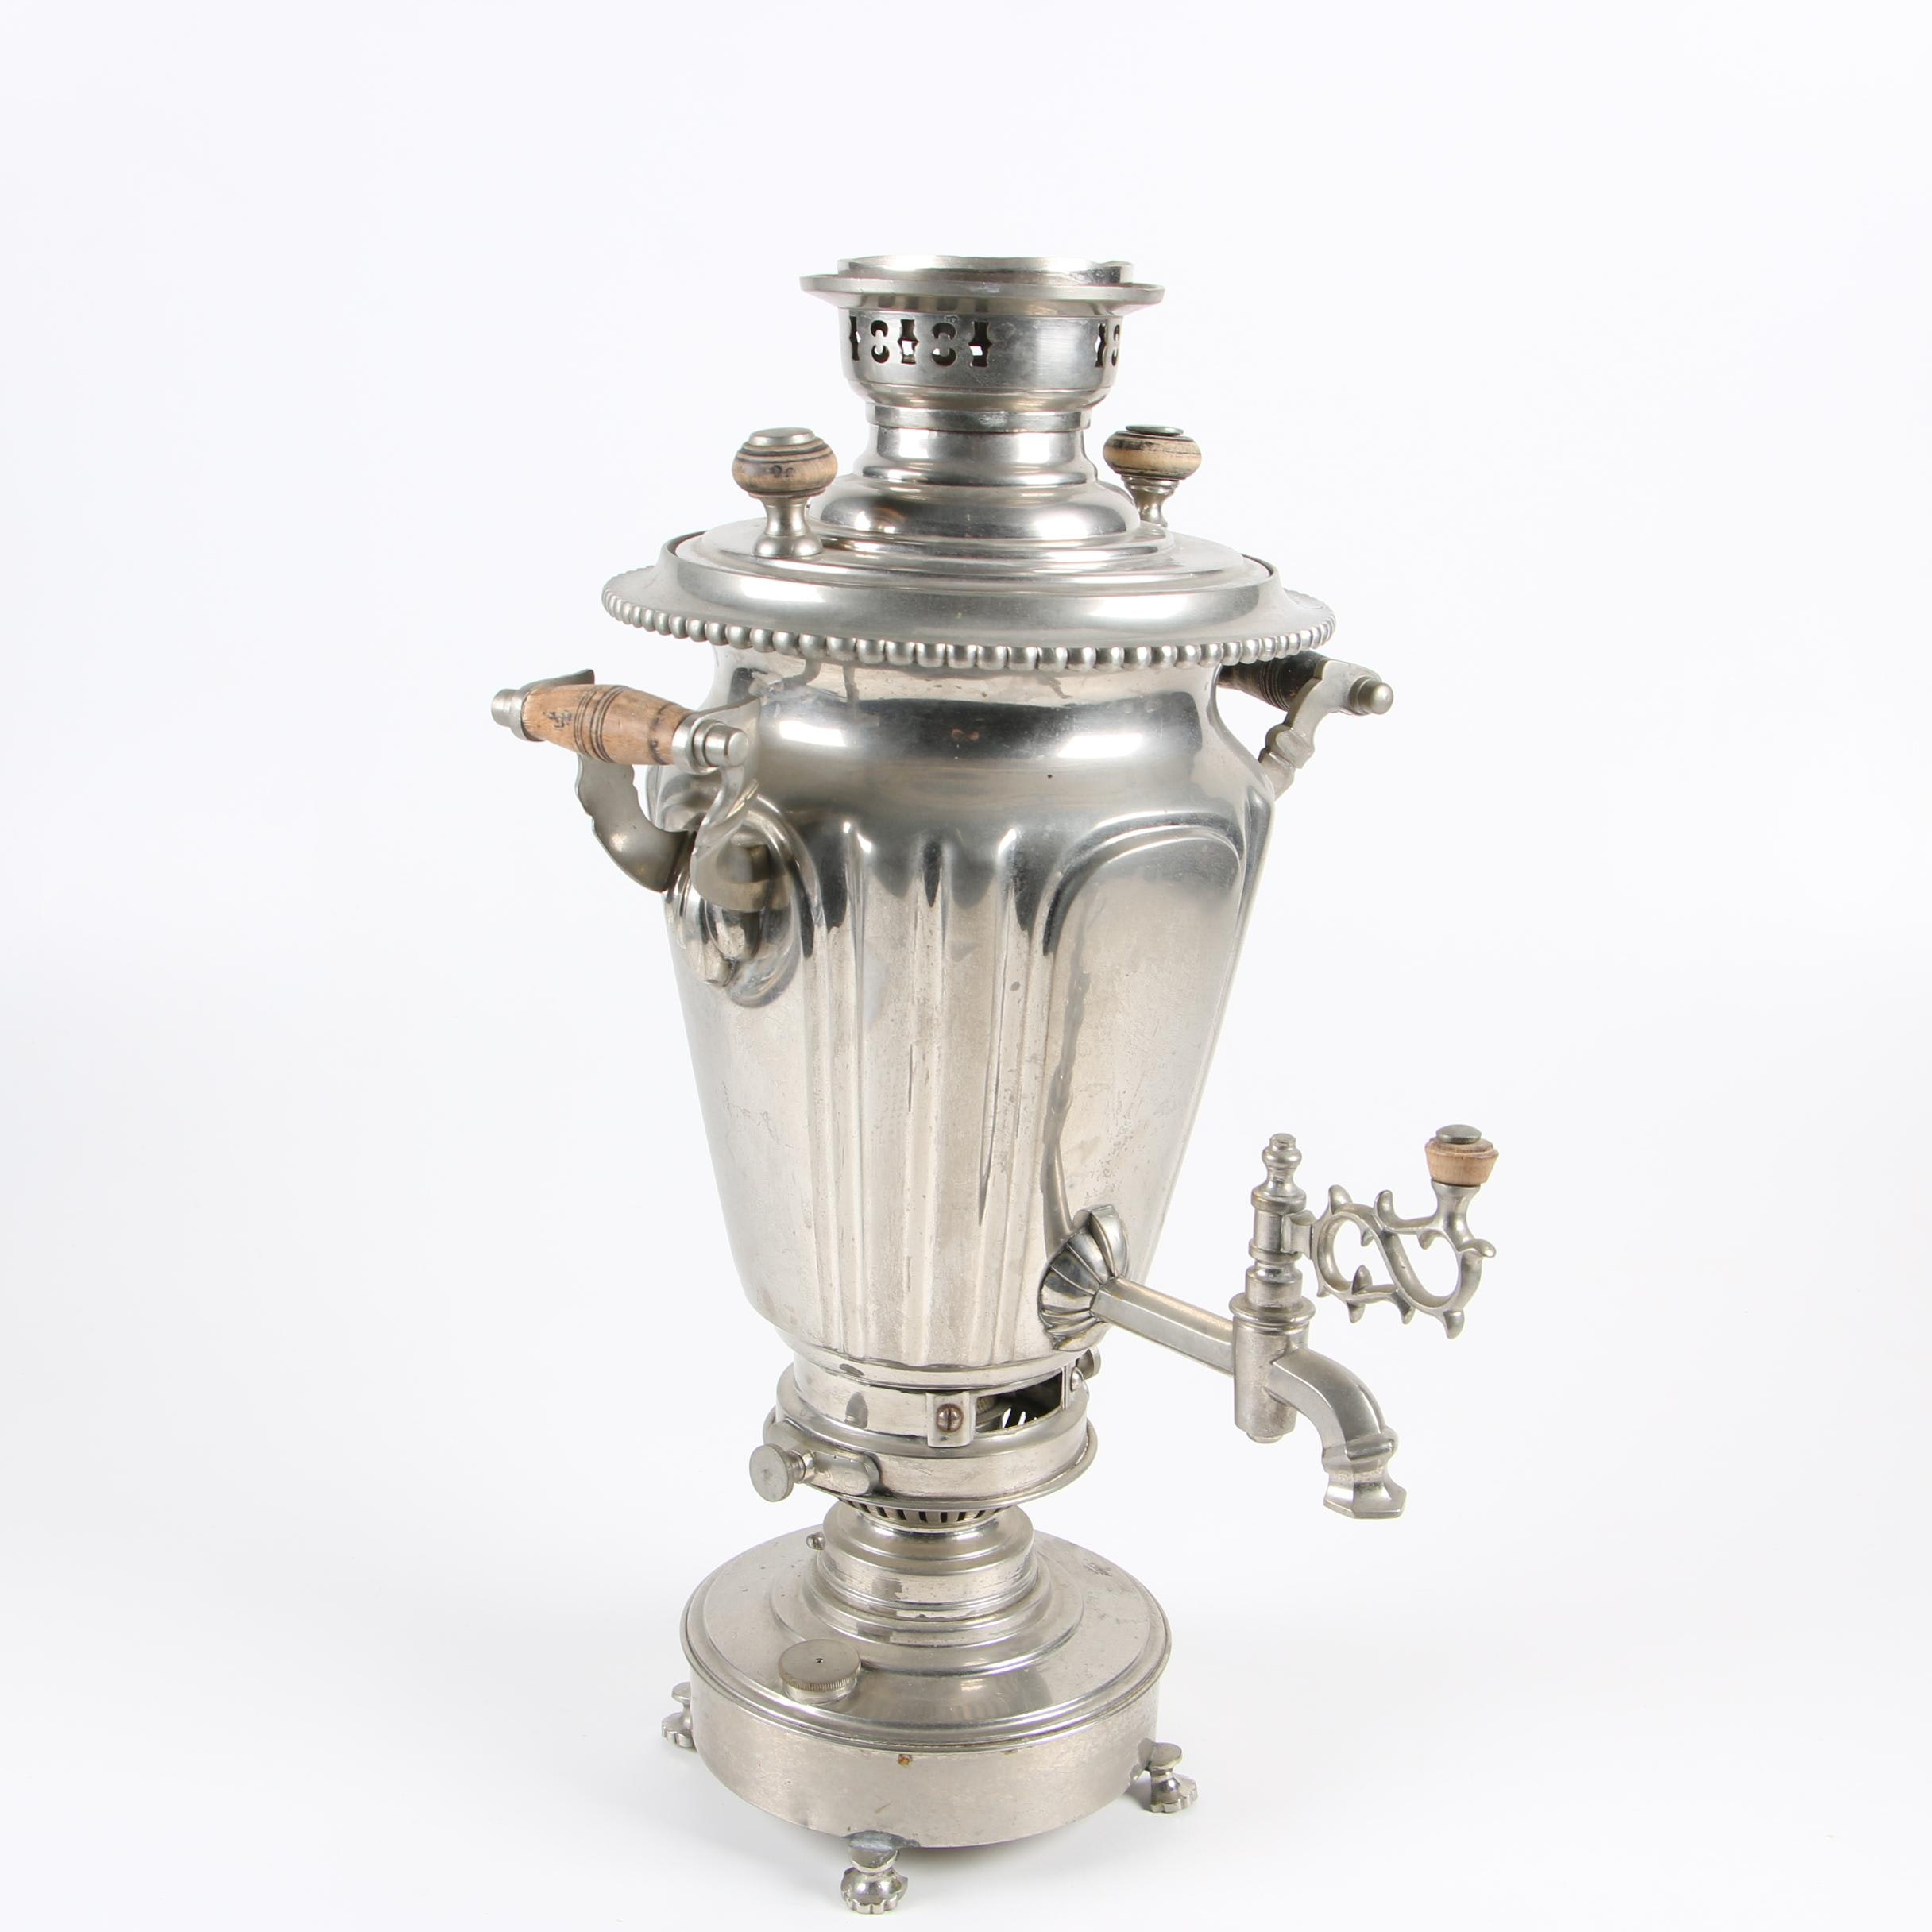 Russian Nickel Plate Samovar, Early to Mid 20th Century